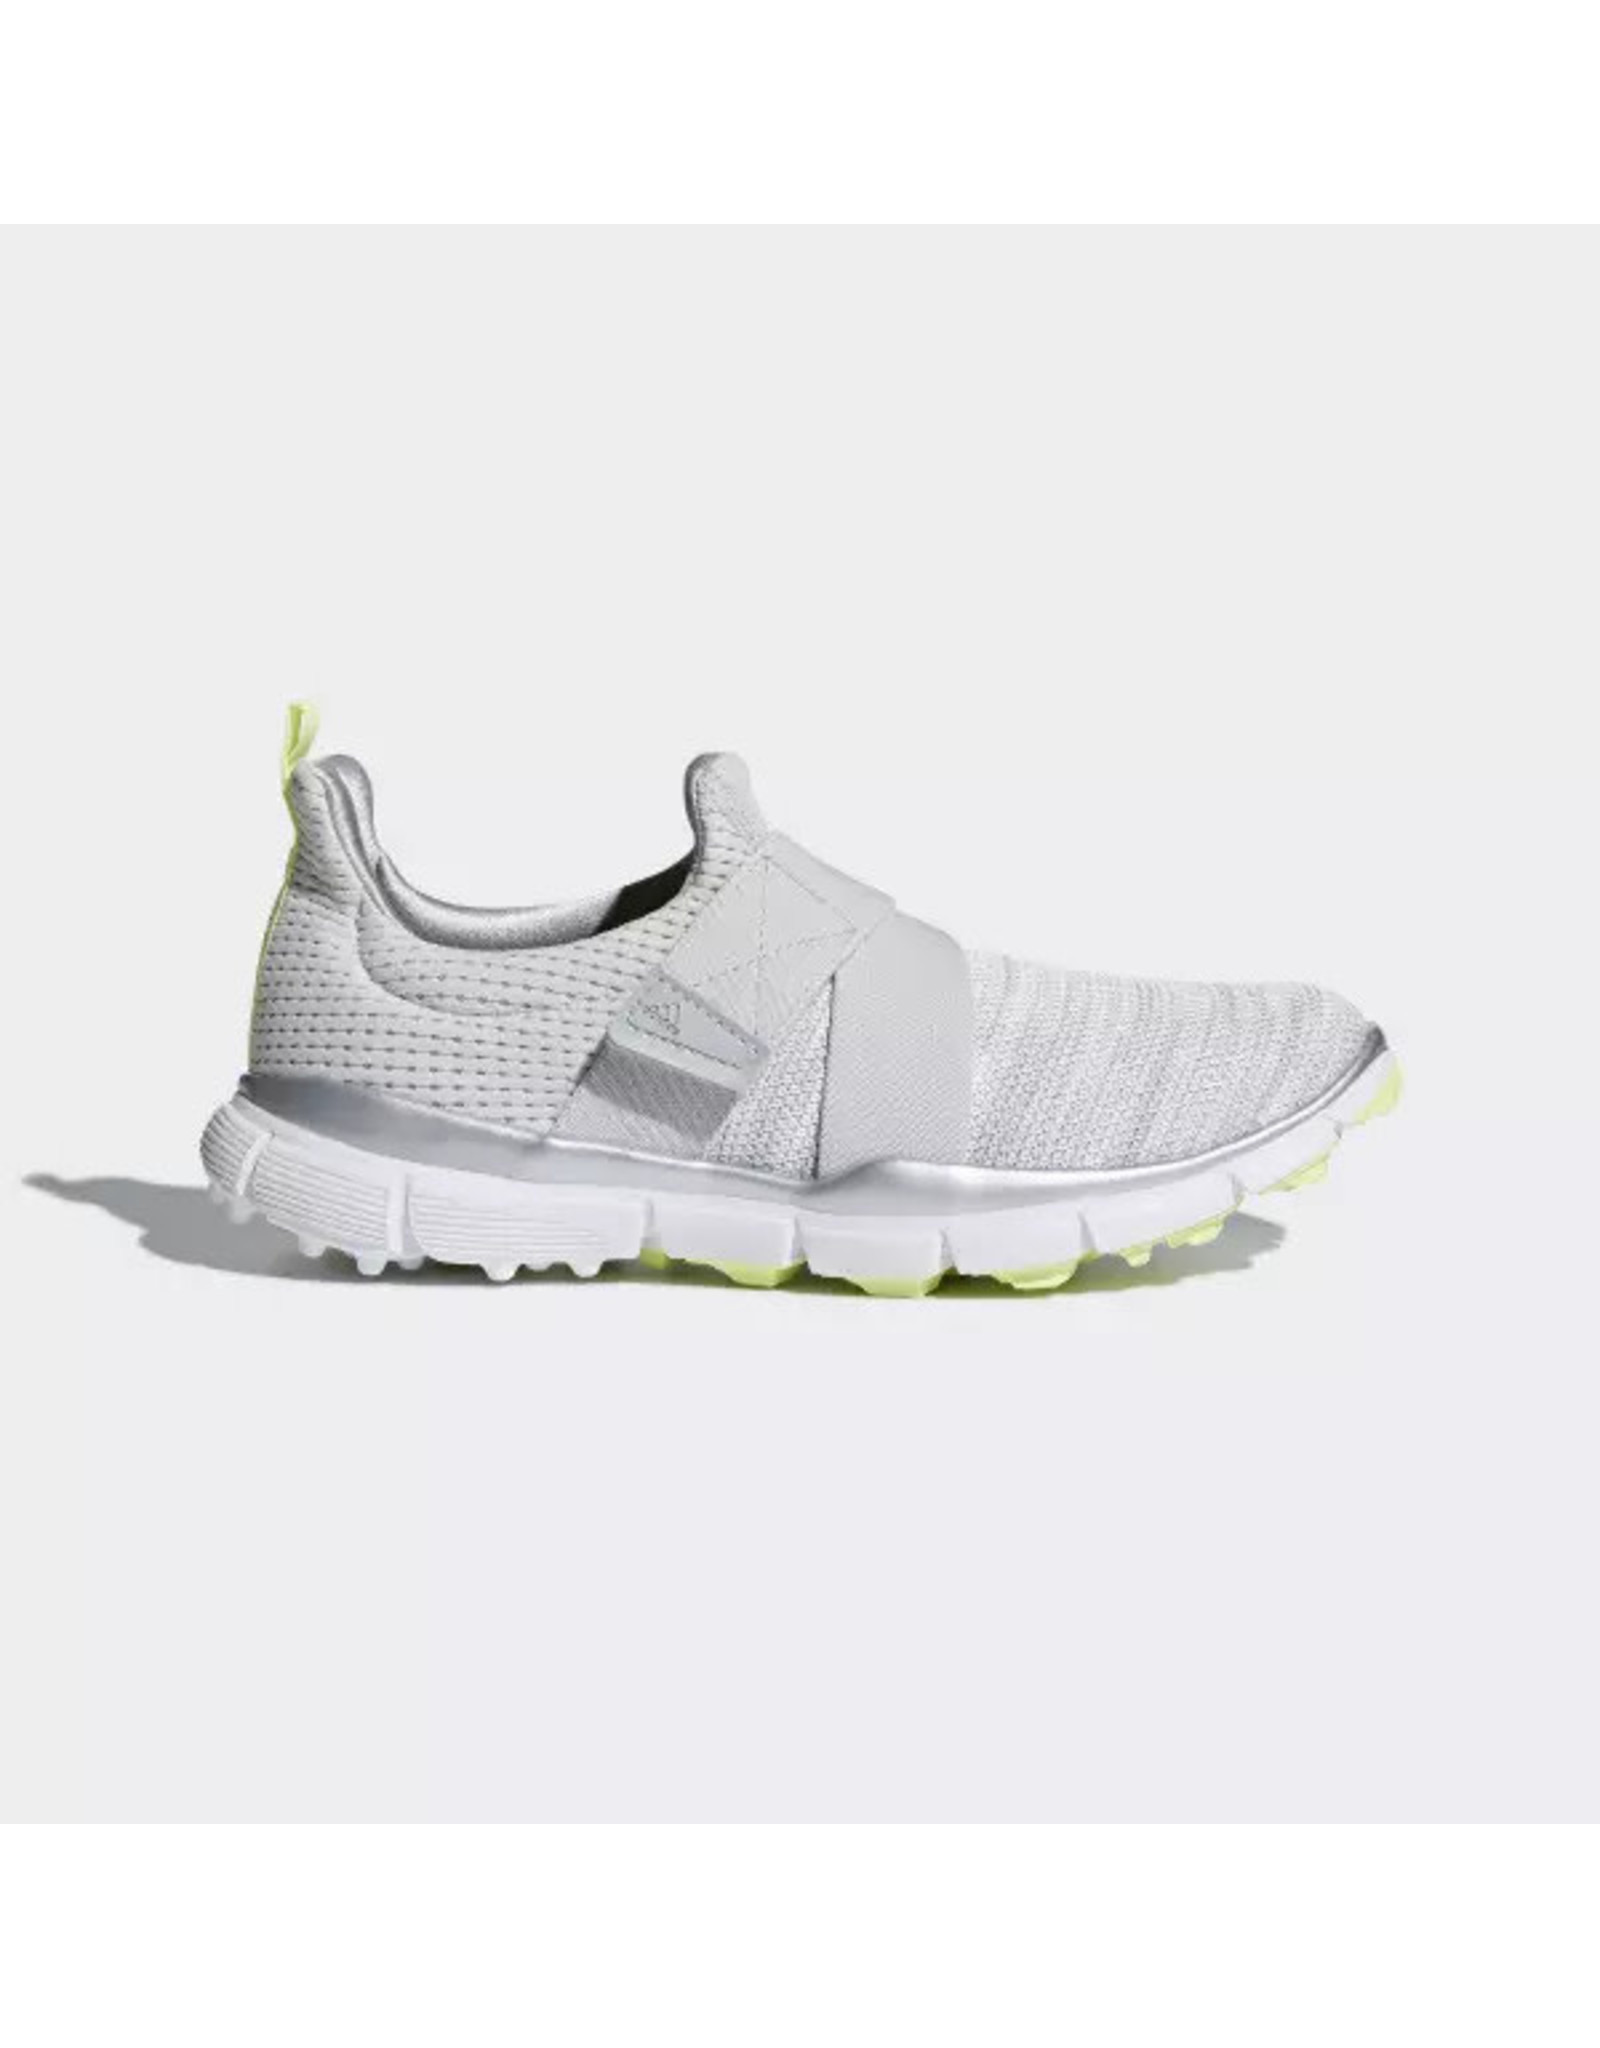 Adidas Adidas Climacool Knit Spikeless Women's Shoe